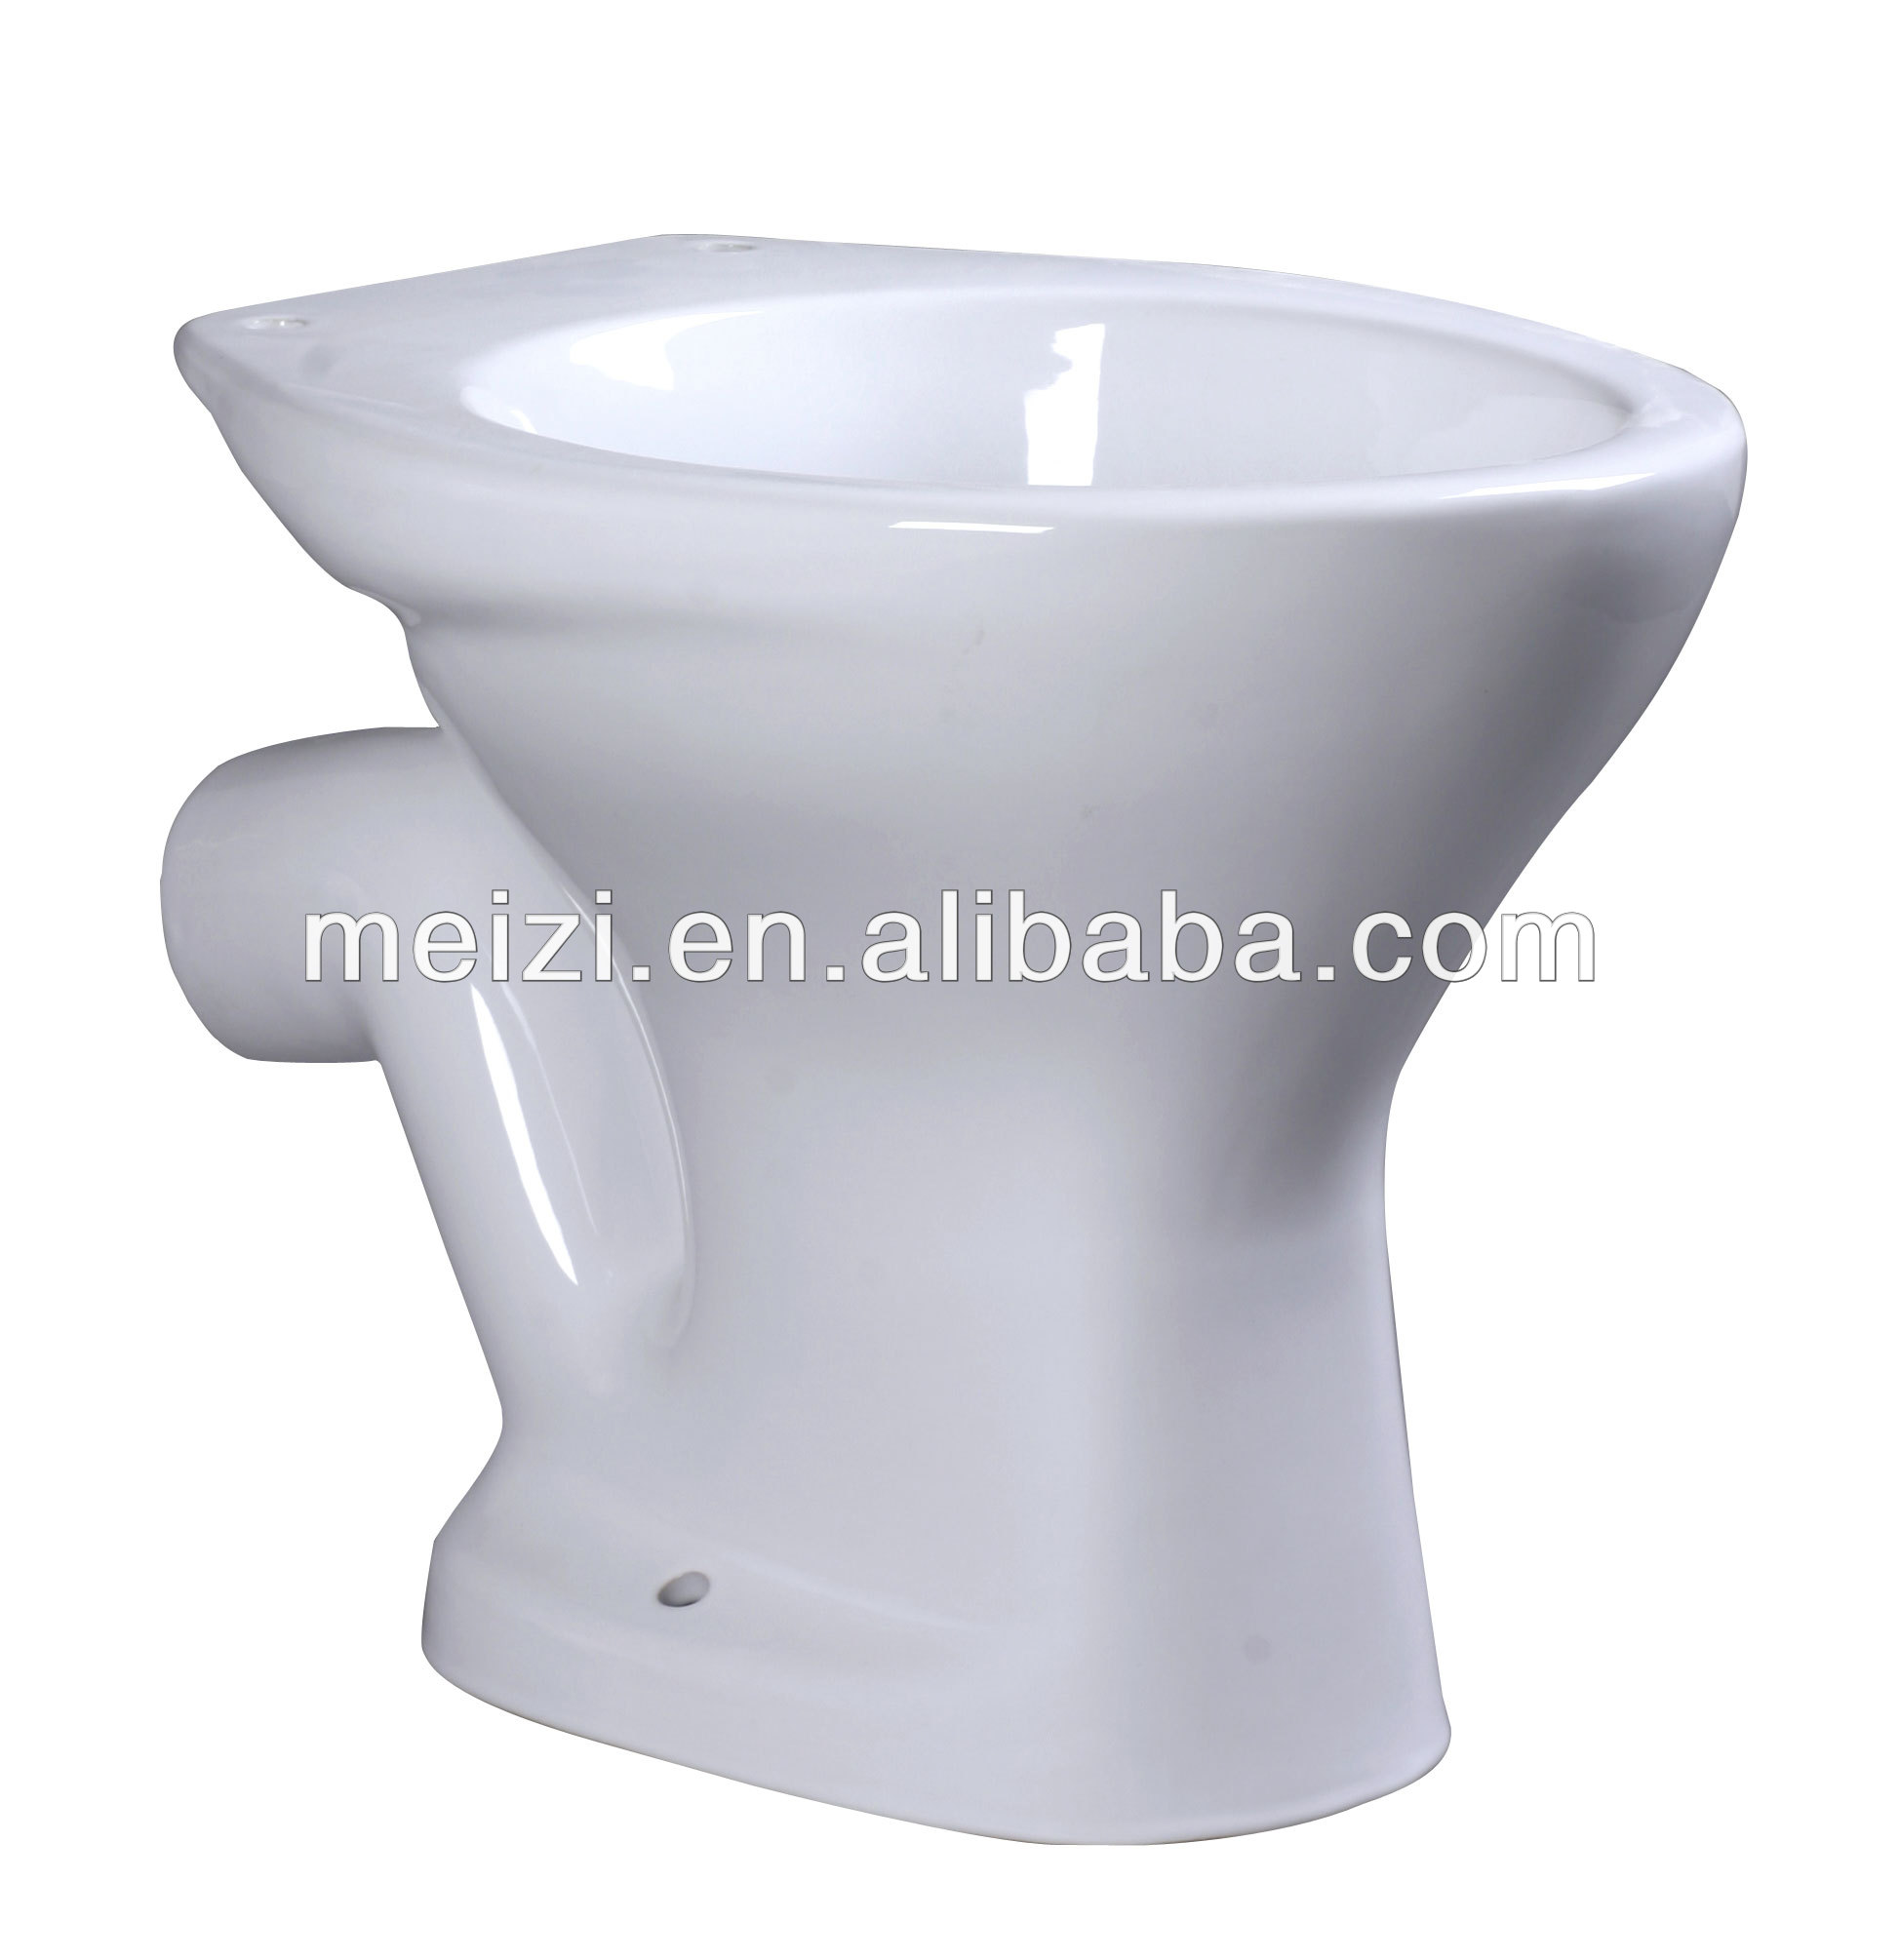 Bathroom P-trap ceramic toilet pan